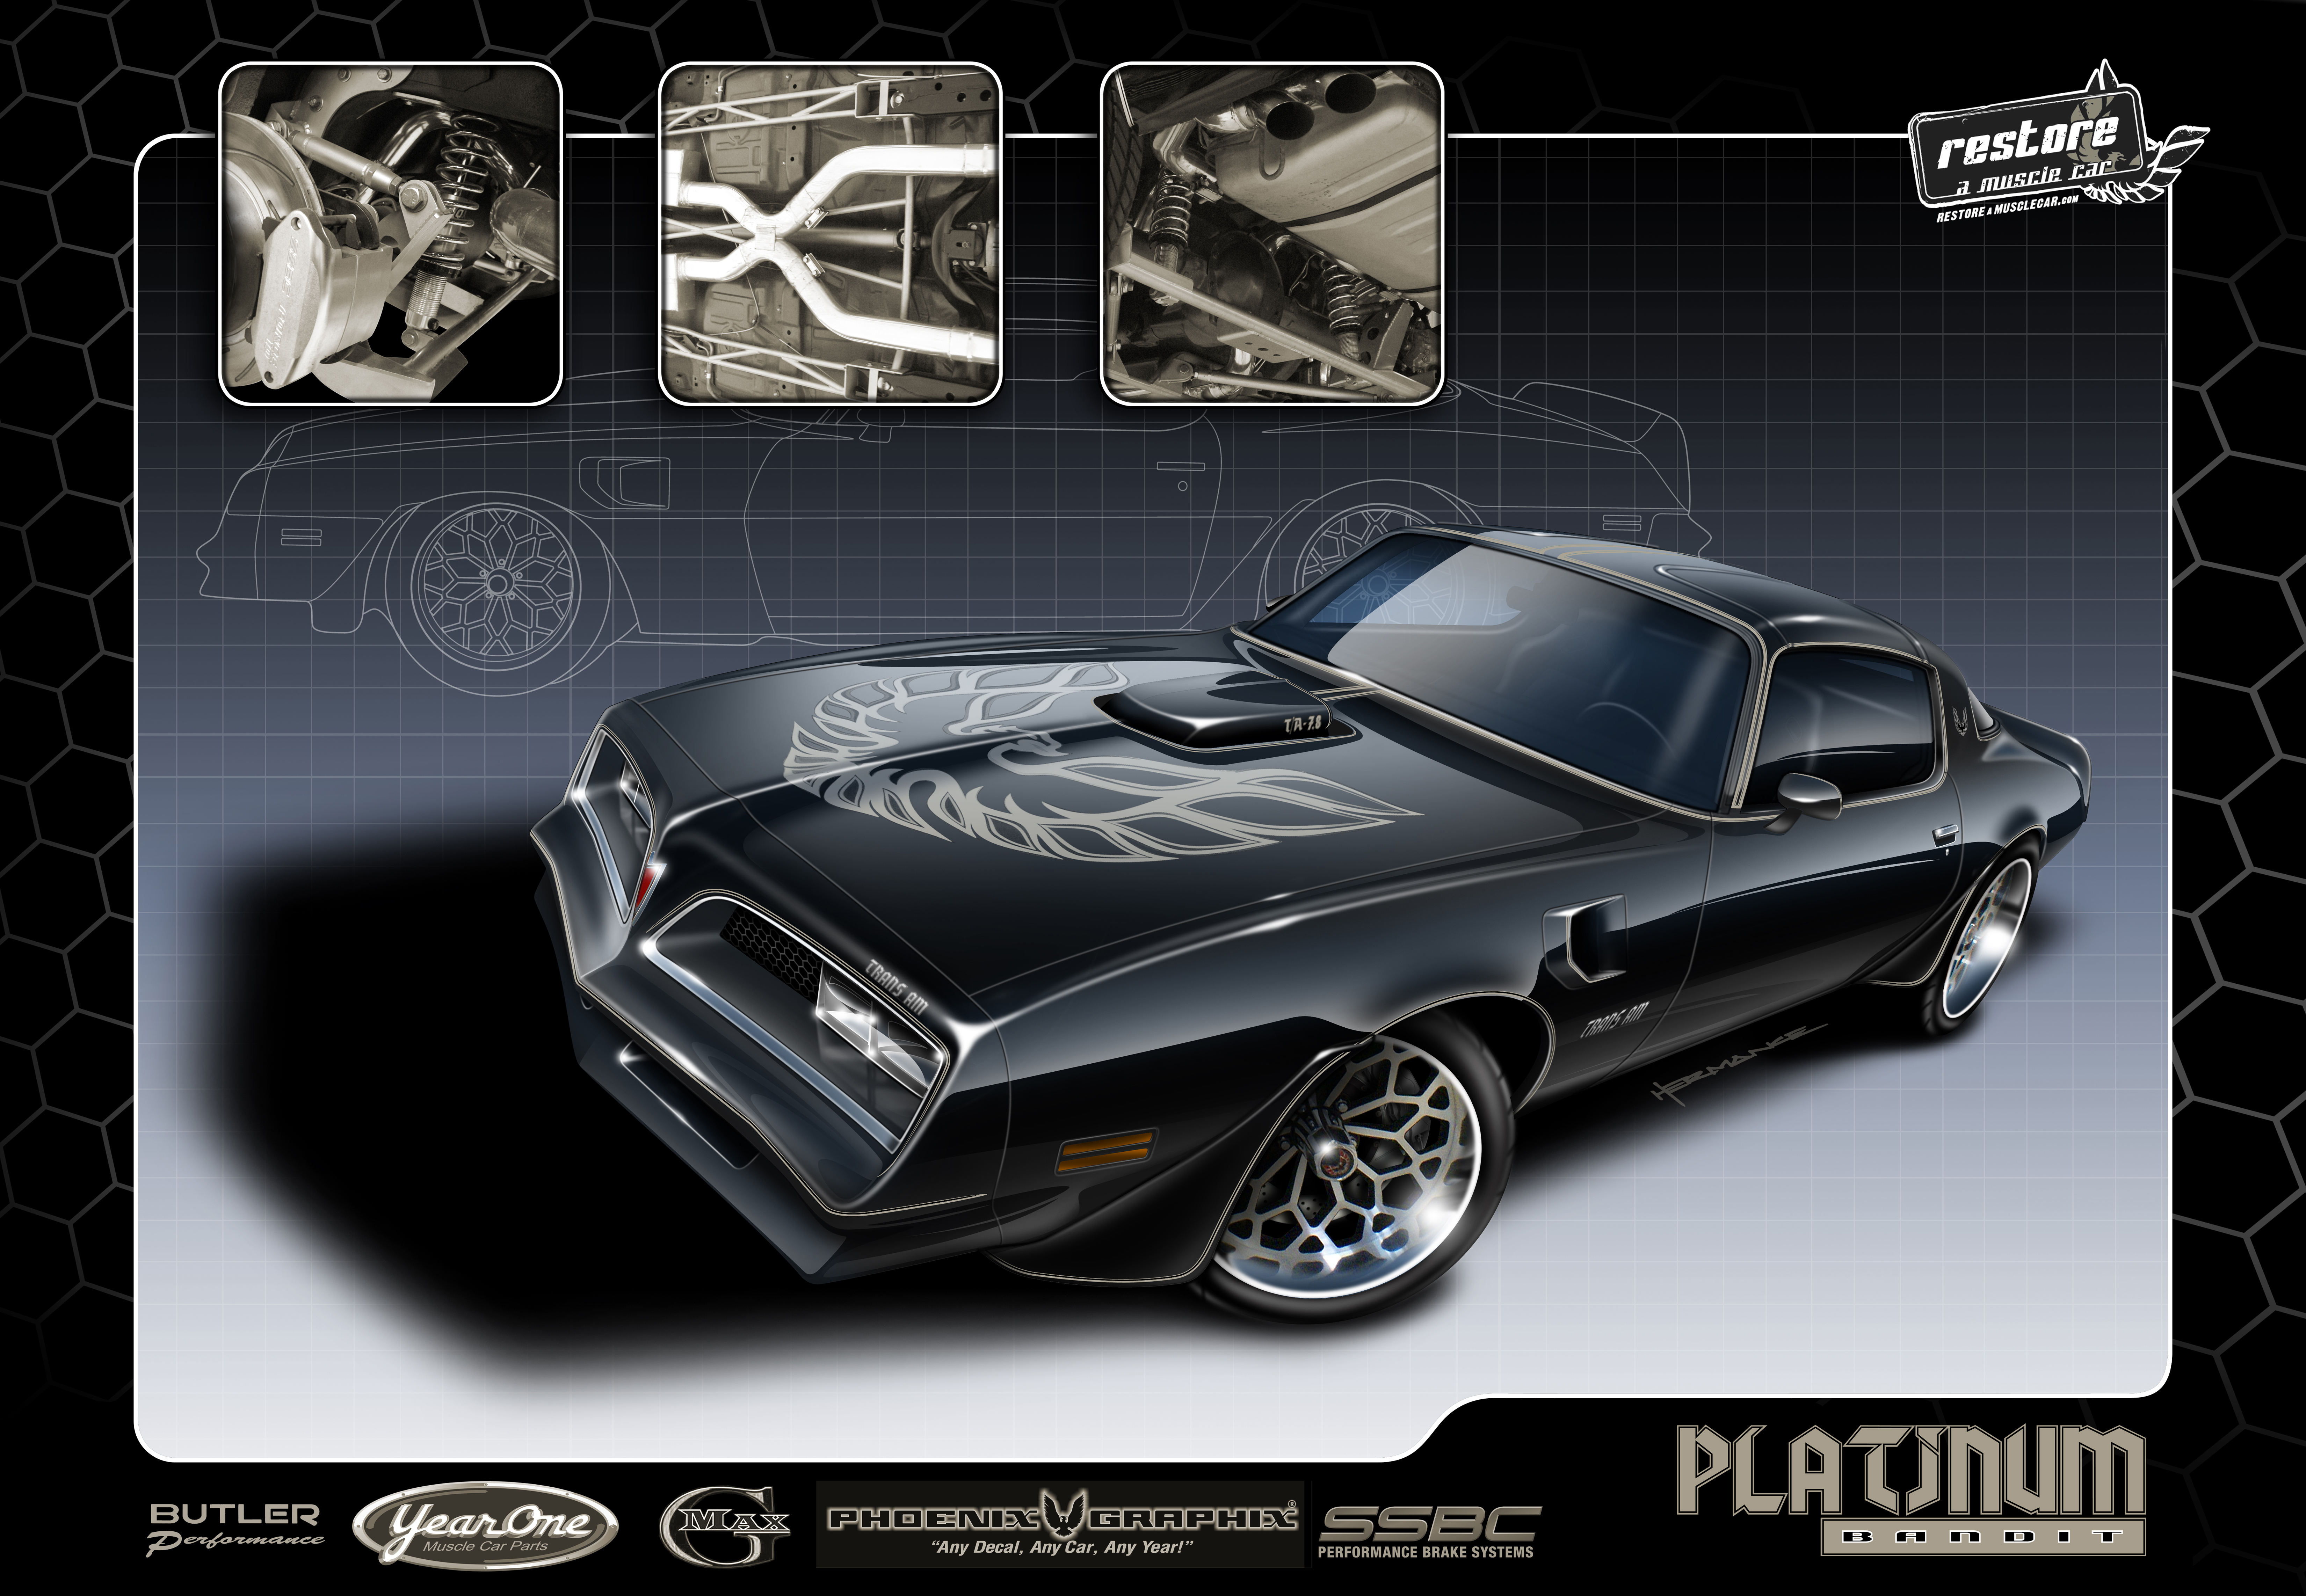 Platinum 1977-1981 Trans Am Decals Available For Purchase